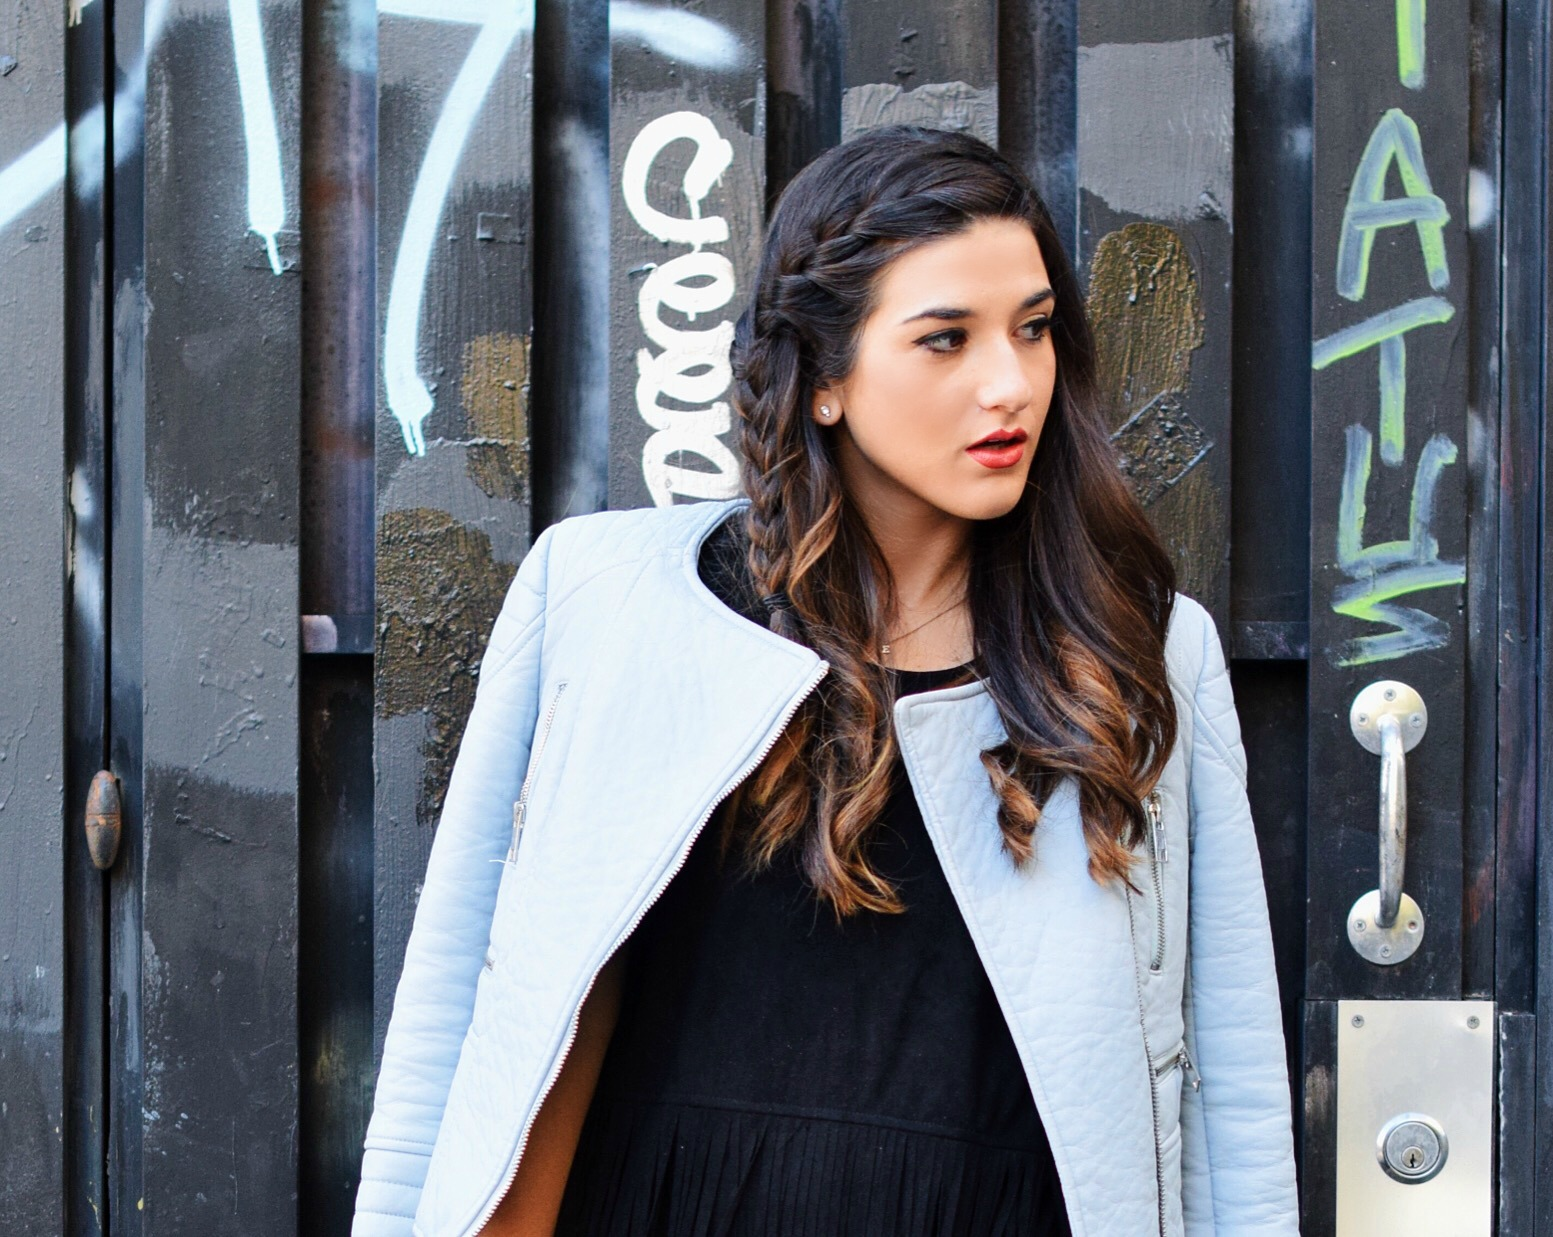 Black Fringe Dress Trèscool Louboutins & Love Fashion Blog Esther Santer NYC Street Style Blogger Baby Blue Leather Jacket Zara Hair Girl Model Photoshoot Booties Nordstrom Outfit OOTD Red Nail Polish Shop Pretty  Fall Look Trendy Shoes Winter Inspo.jpg